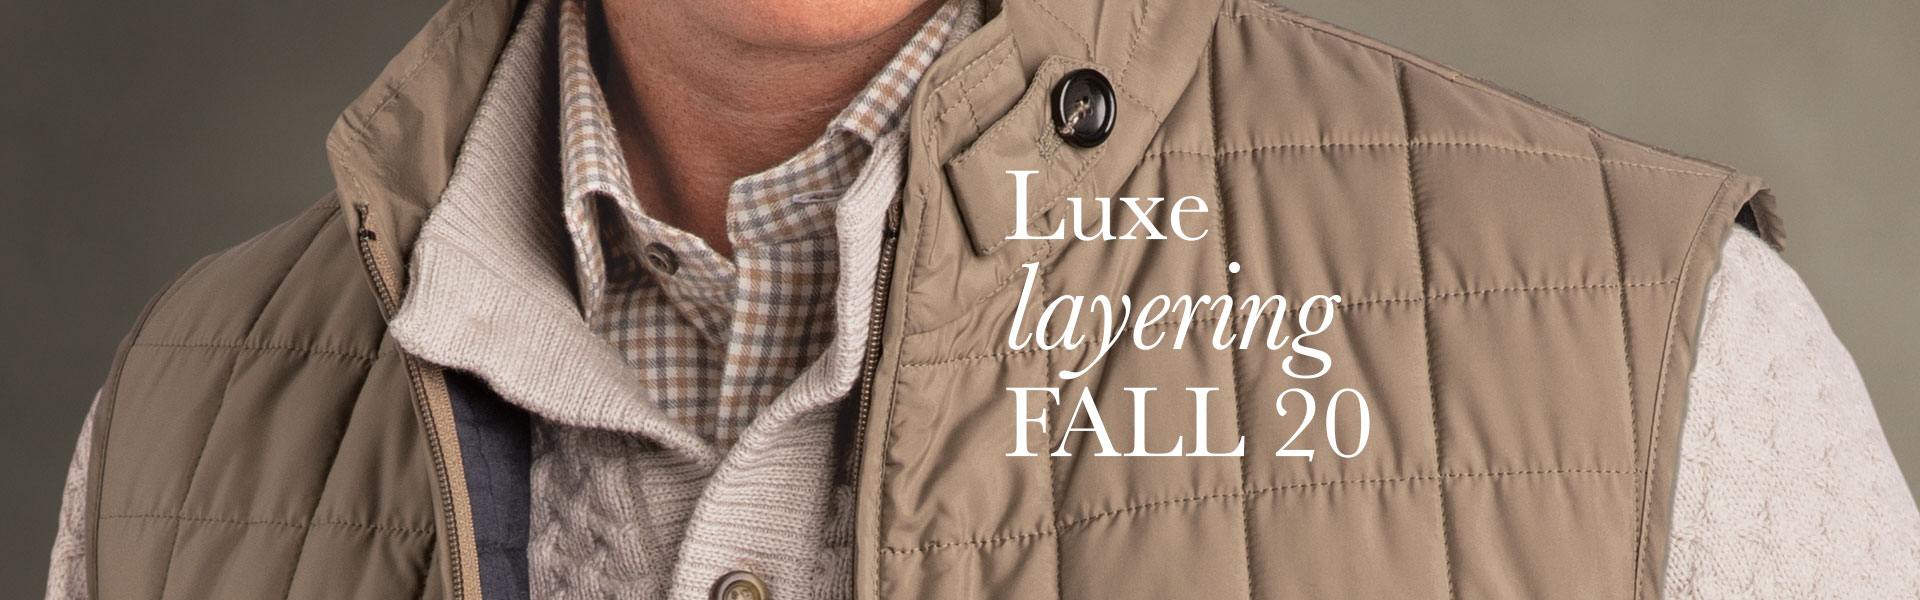 Luxury layering for Fall